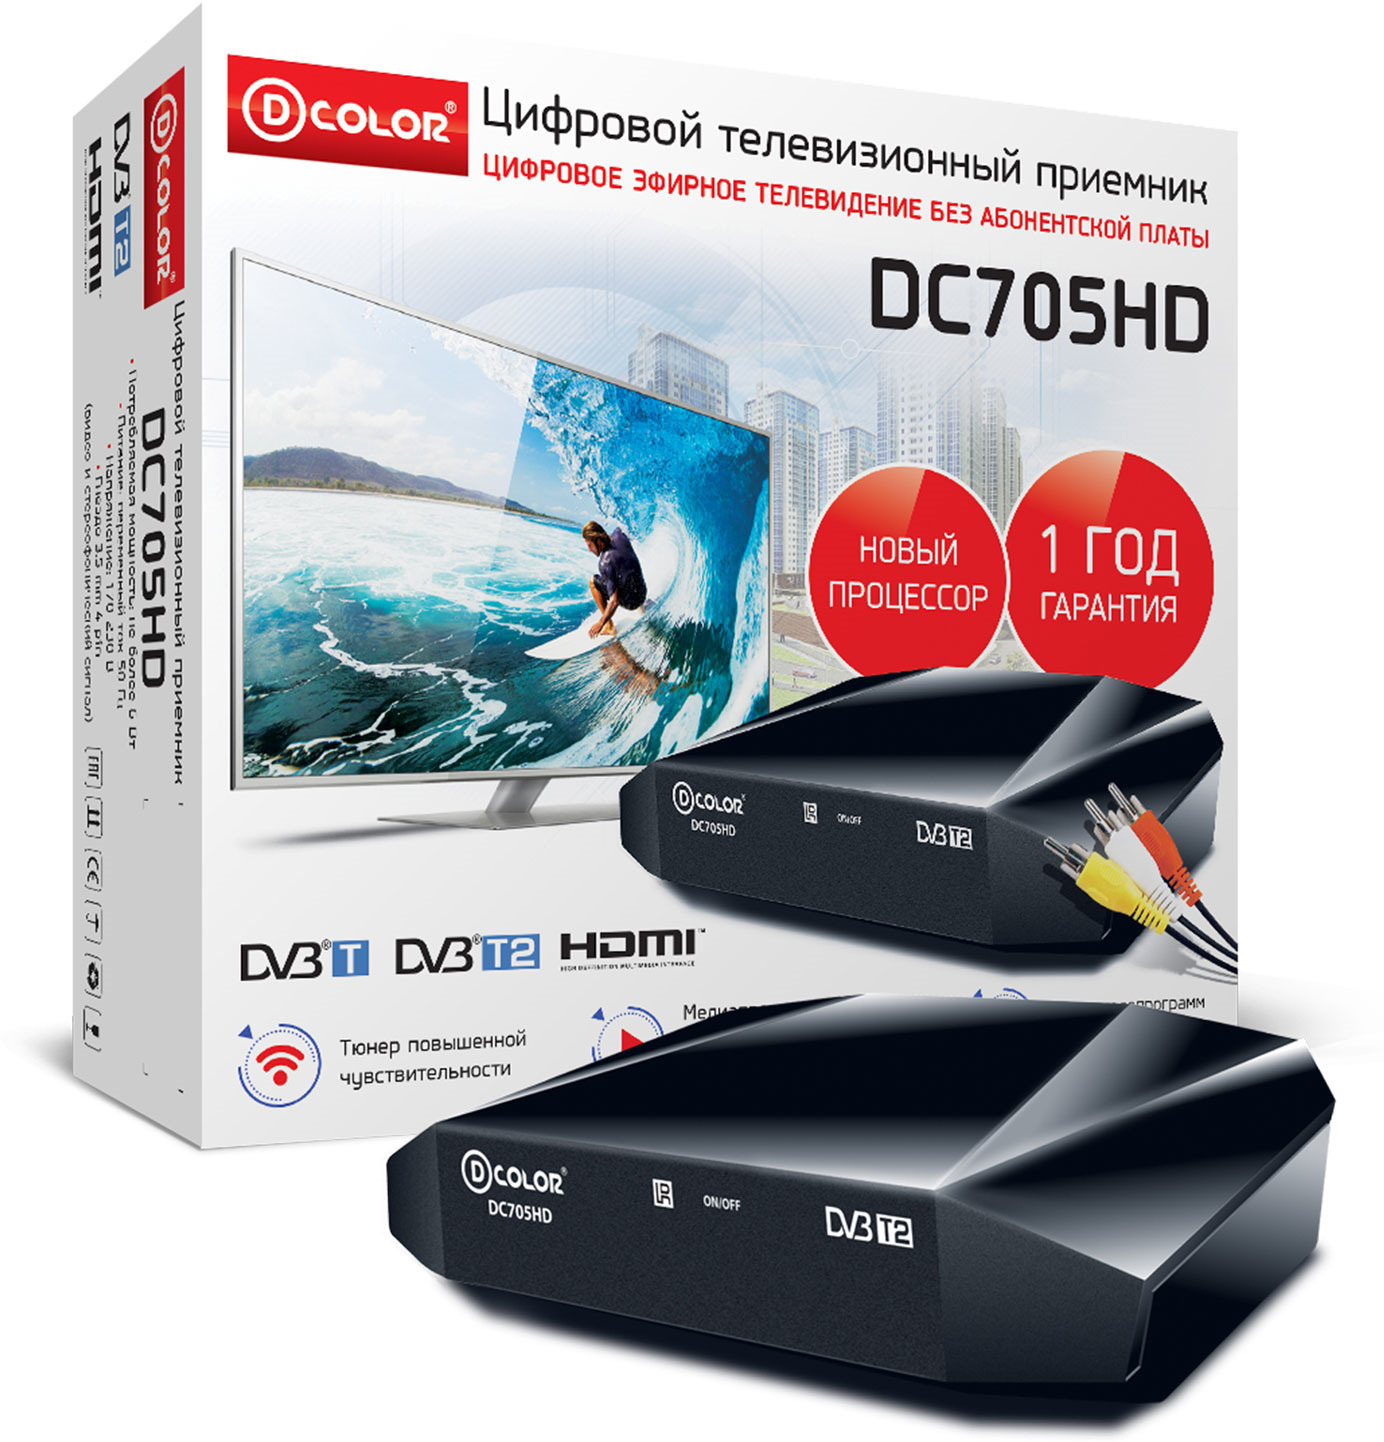 ТВ ресивер D-Color DC705HD тв тюнер якутск